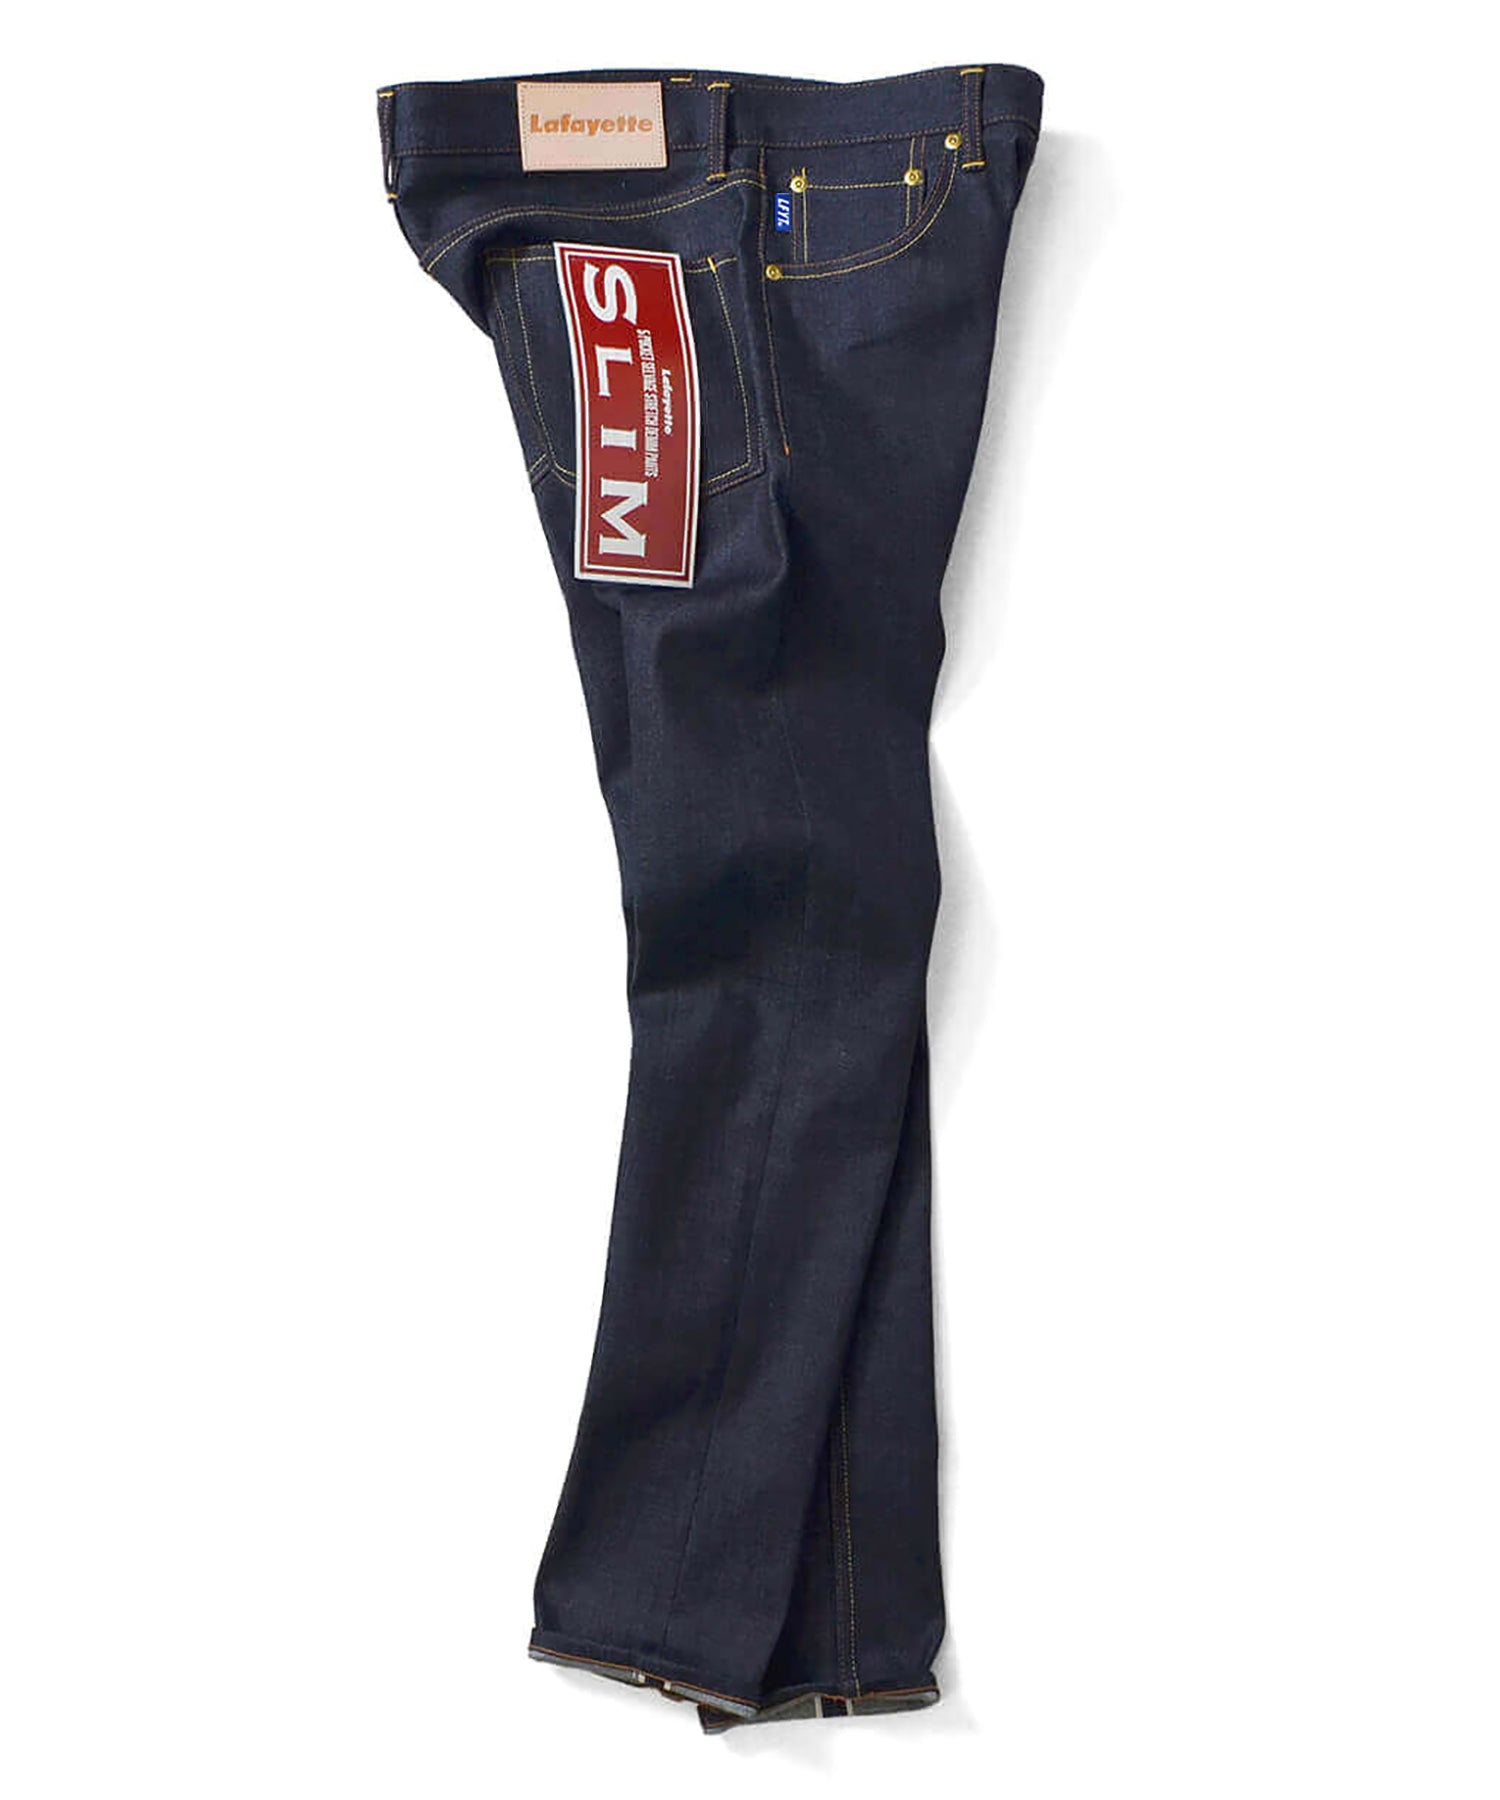 LA201103 5 POCKET SELVAGE STRETCH DENIM PANTS SLIM FIT INDIGO